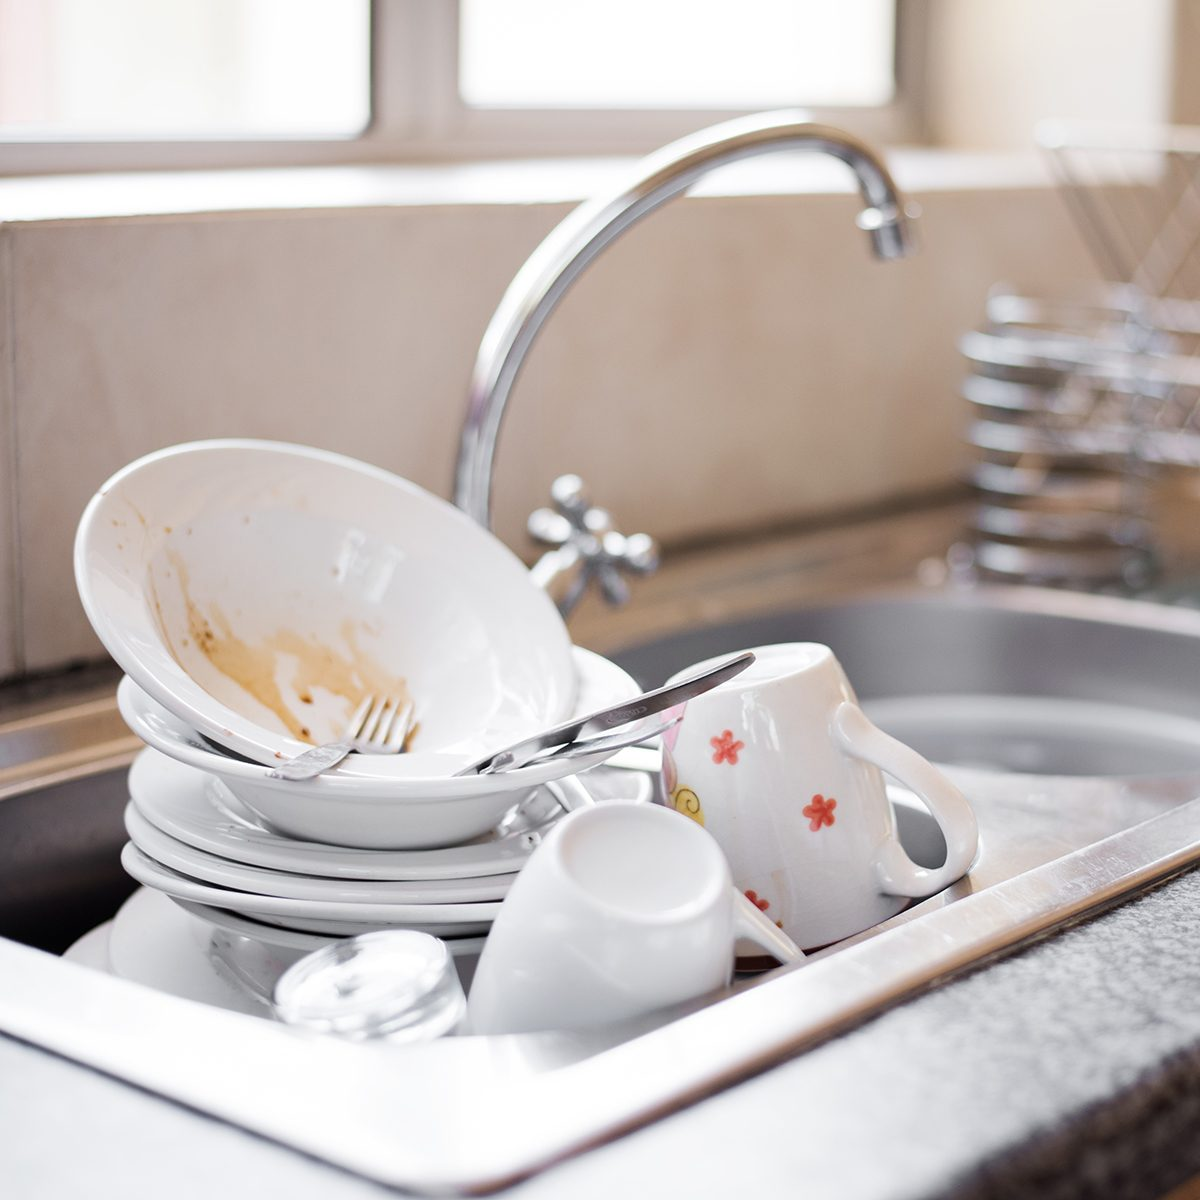 Shot of kitchen sink full of dirty dishes